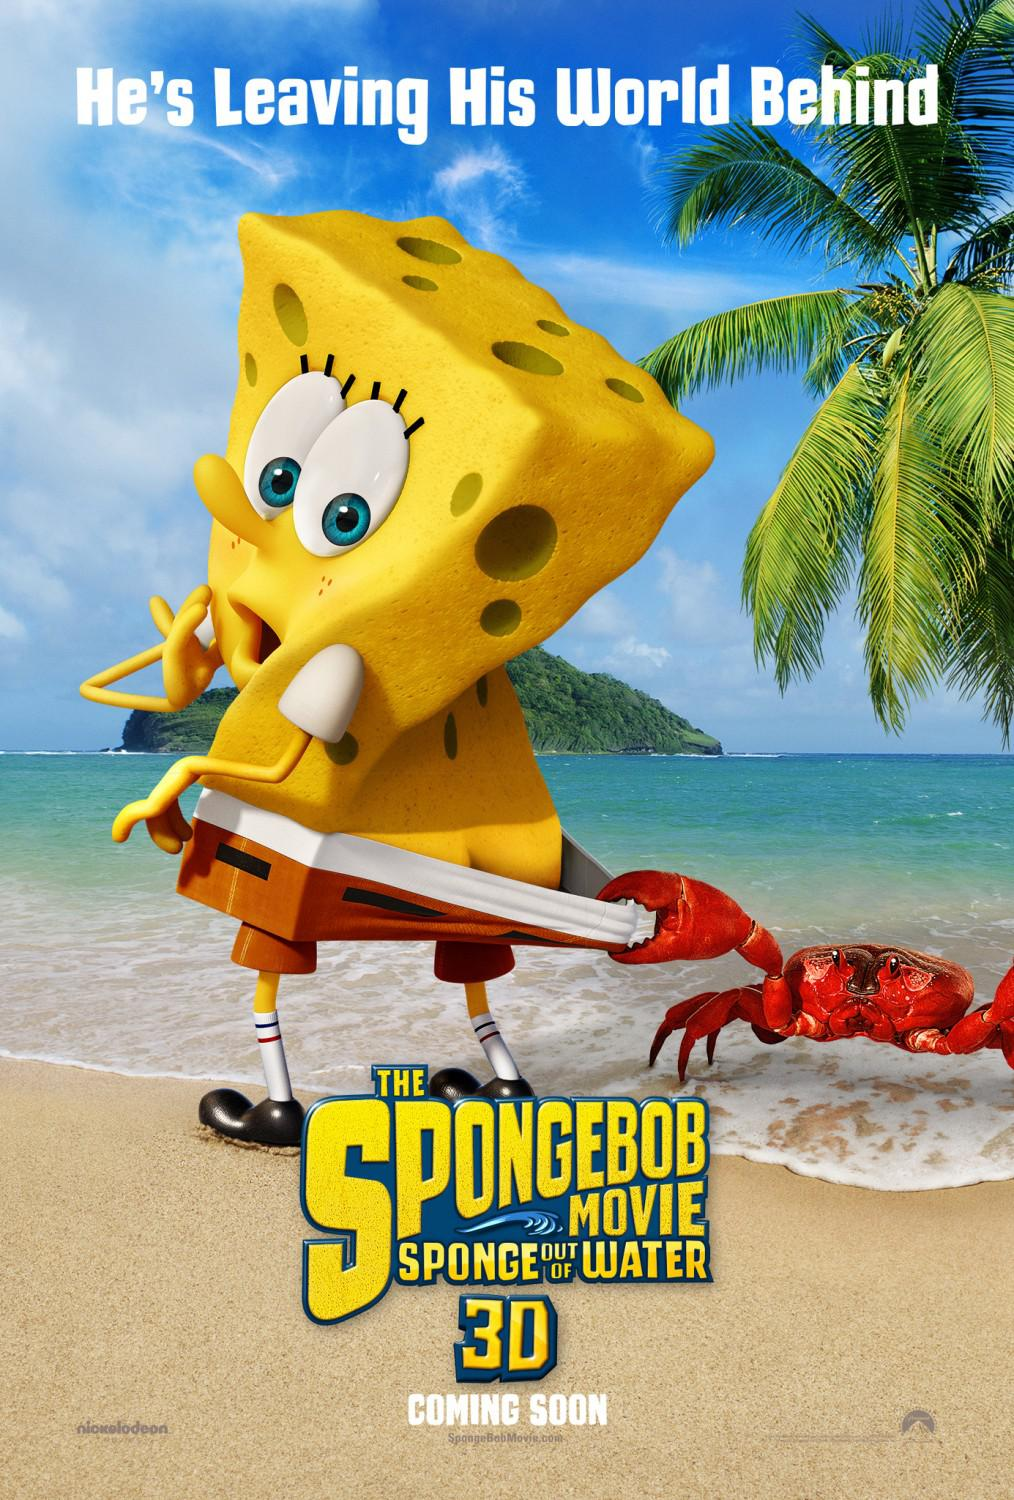 Spongebob Squarepants - Sponge out of Water - poster - he's leaving his world behind